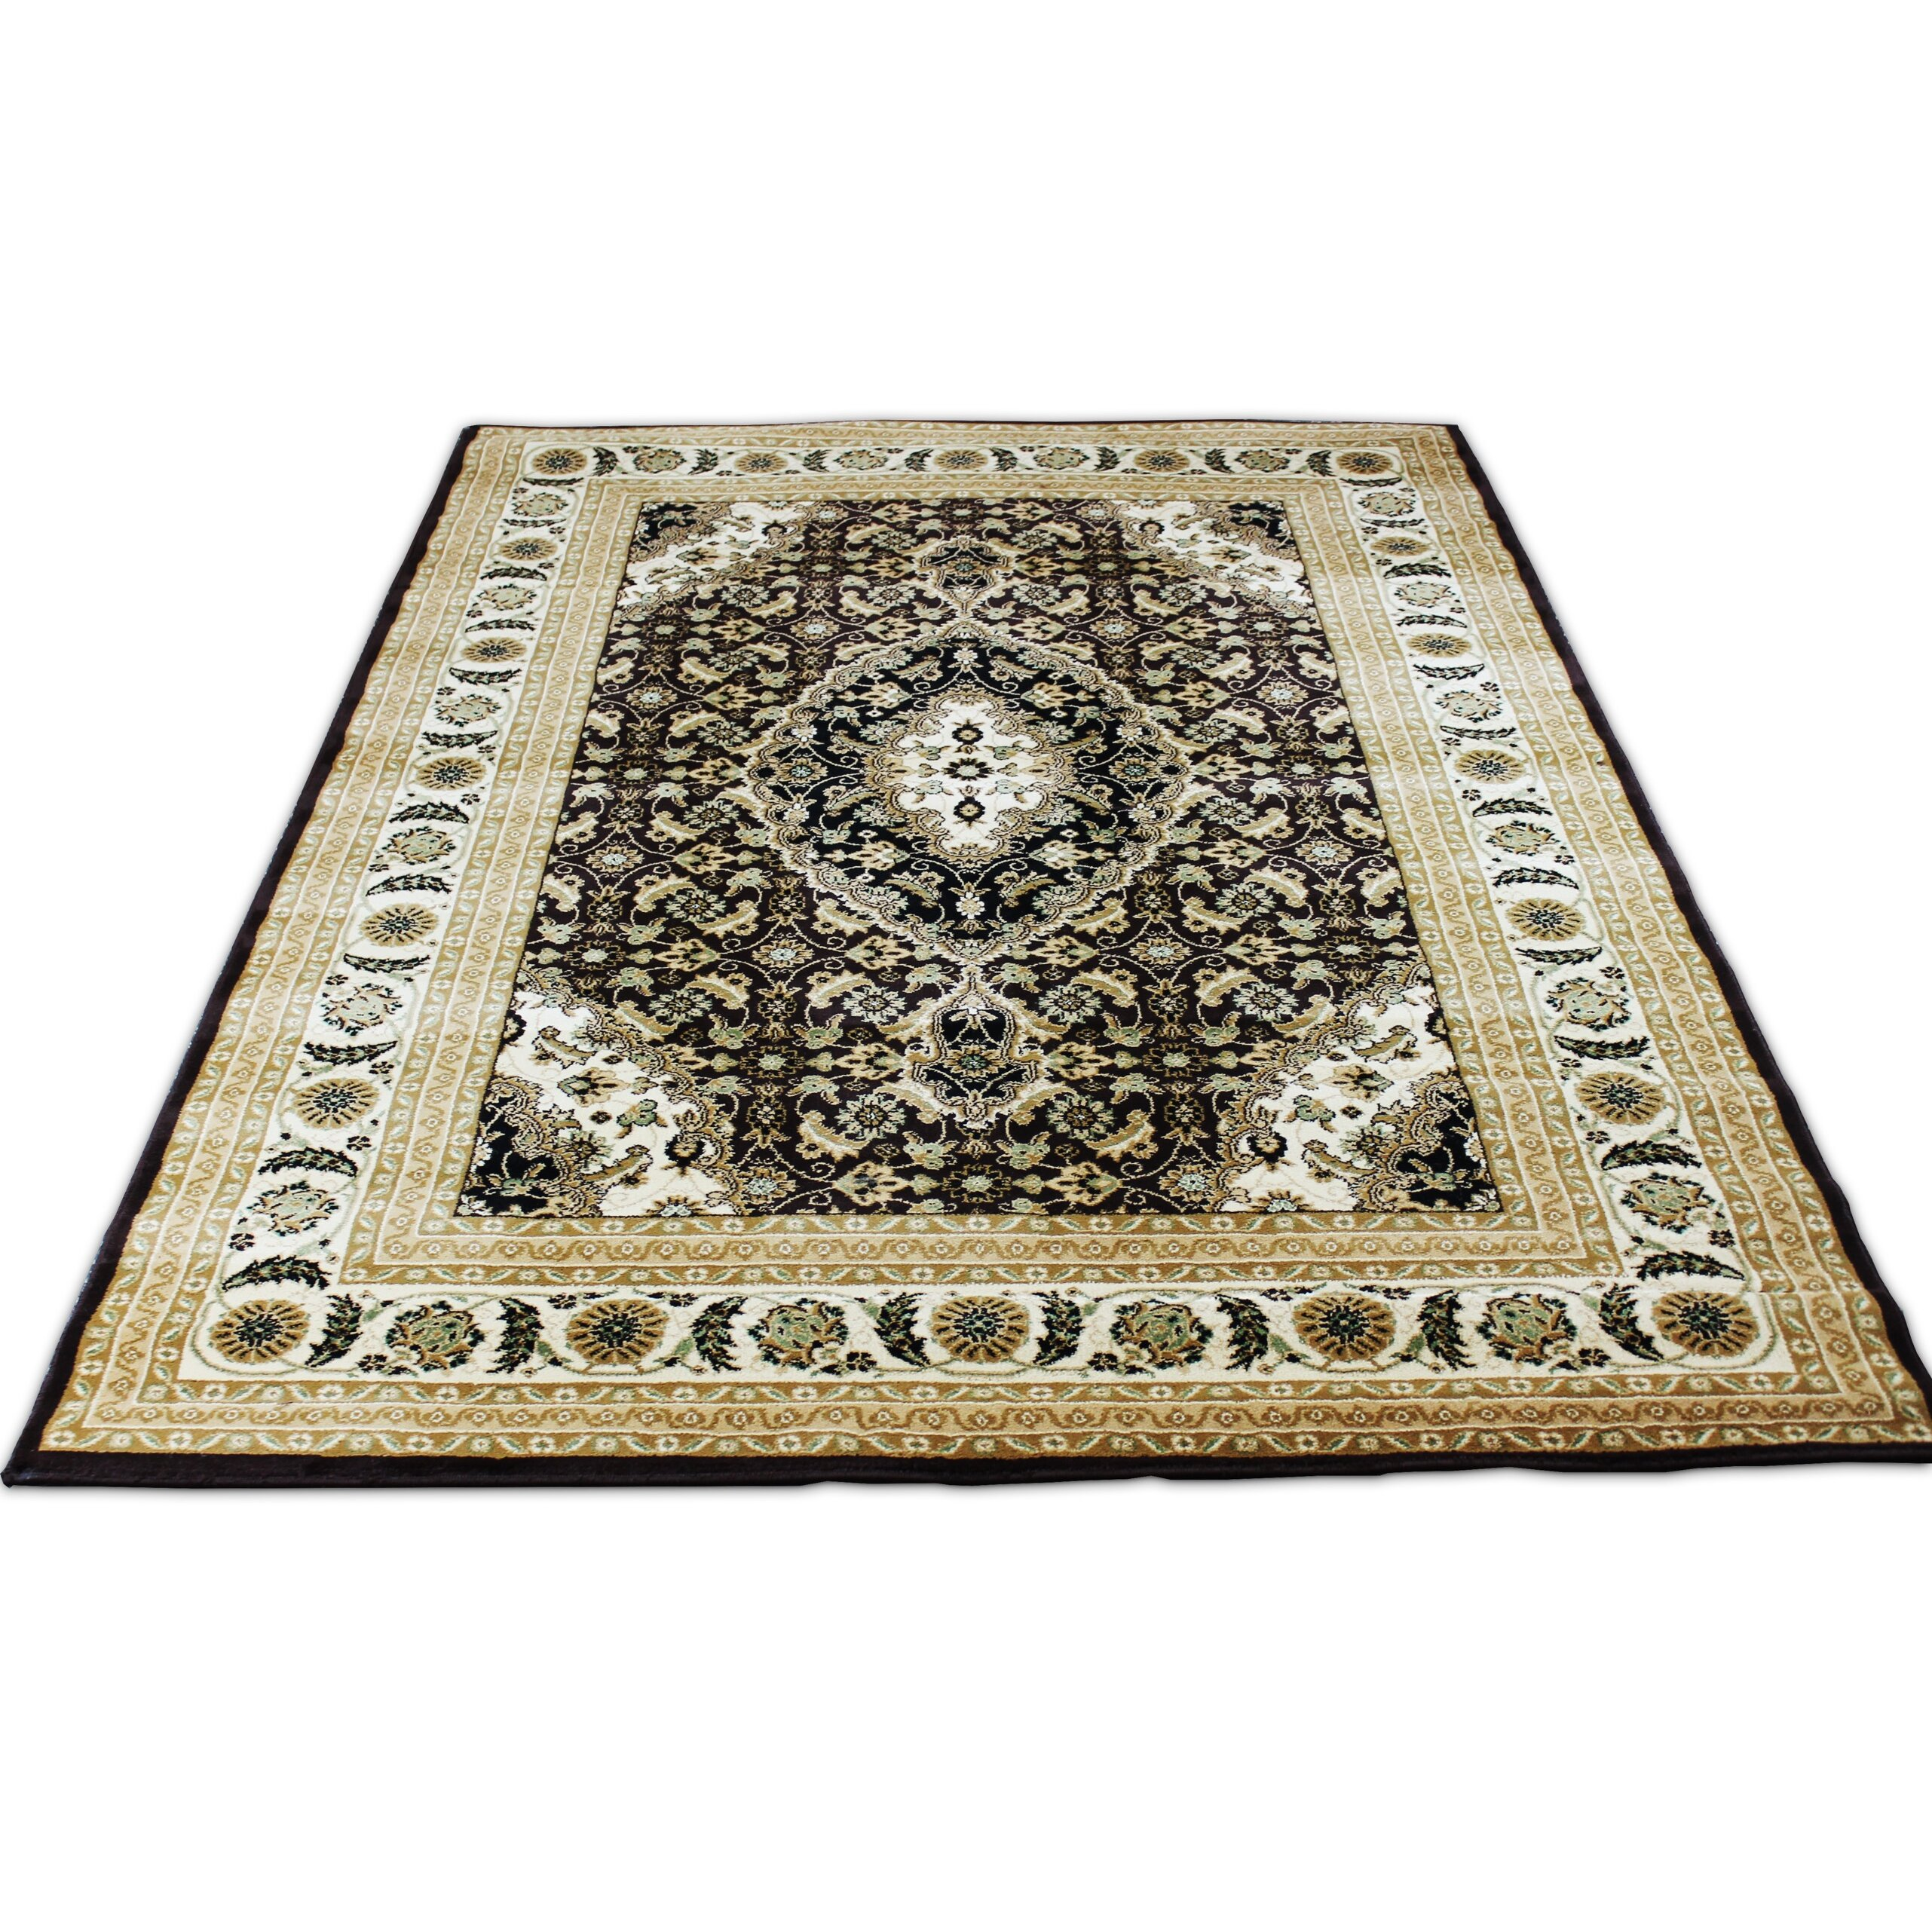 Brown area rugs artistic weavers central park kate awhp4014 brown area rug payless rugs